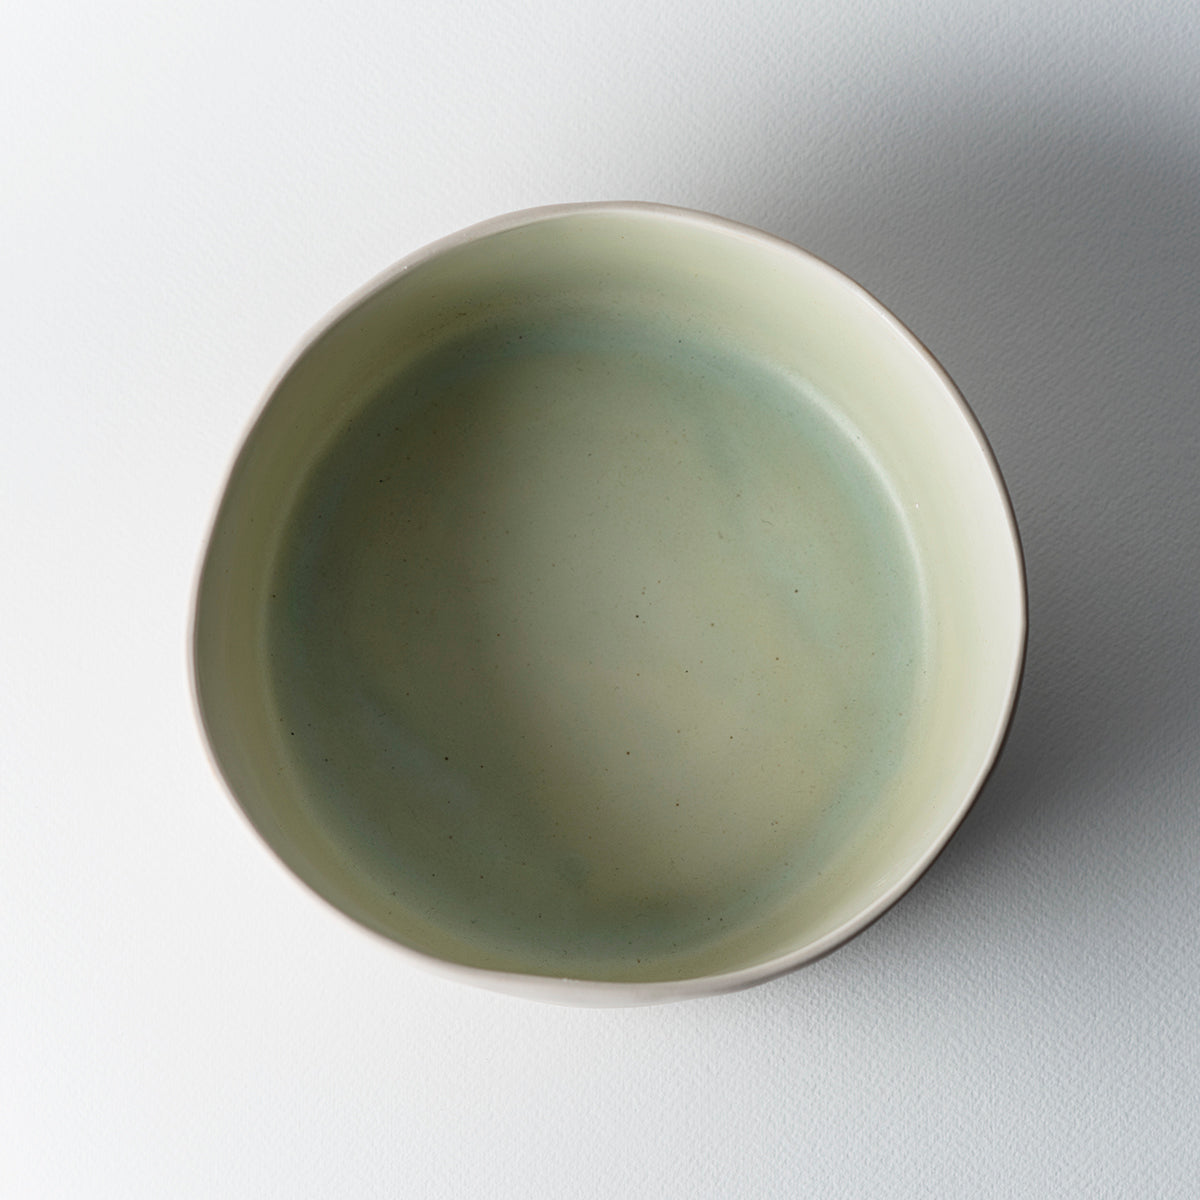 GREEN SMALL SALAD BOWL